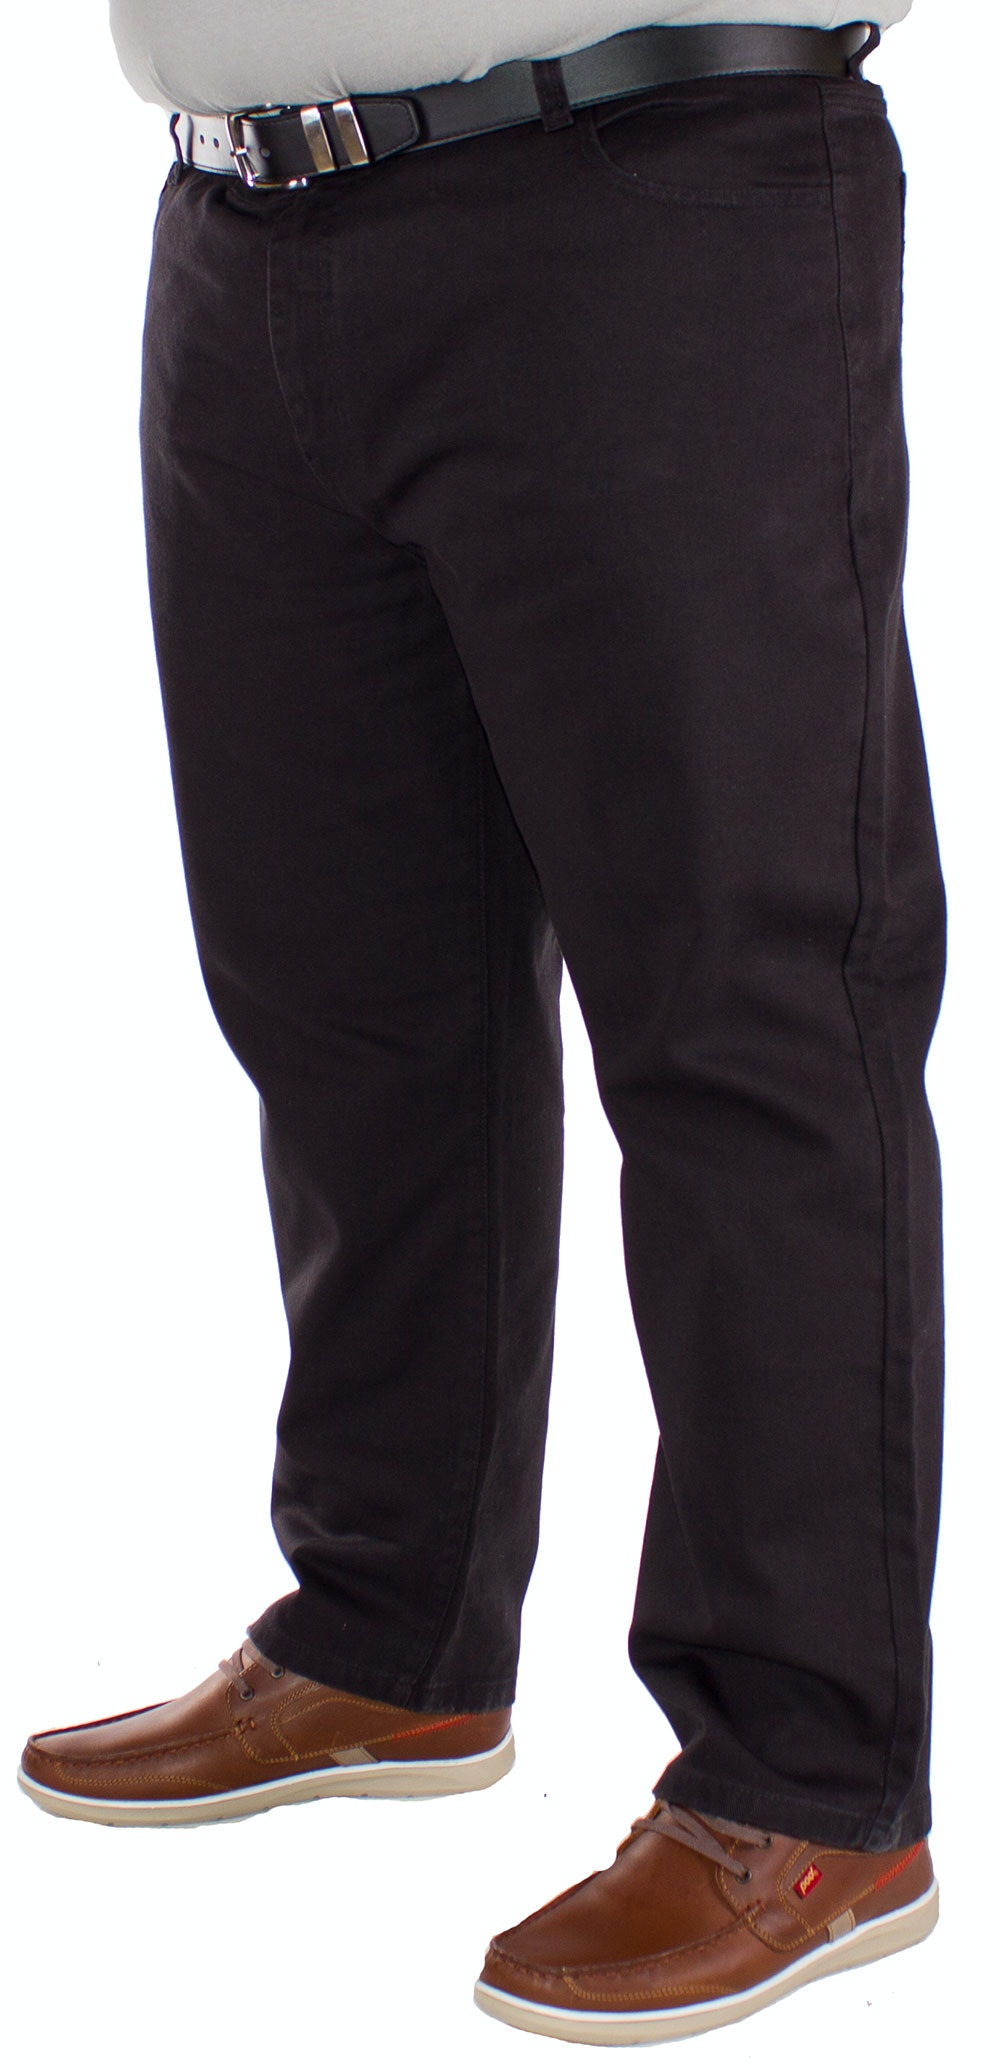 Carabou Black Worker Jeans Tall